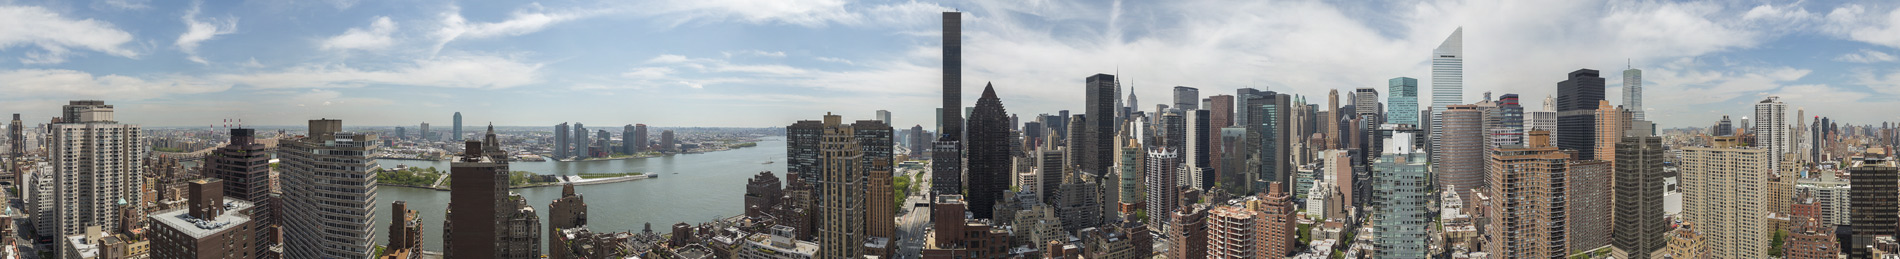 East Side NYC Drone Views